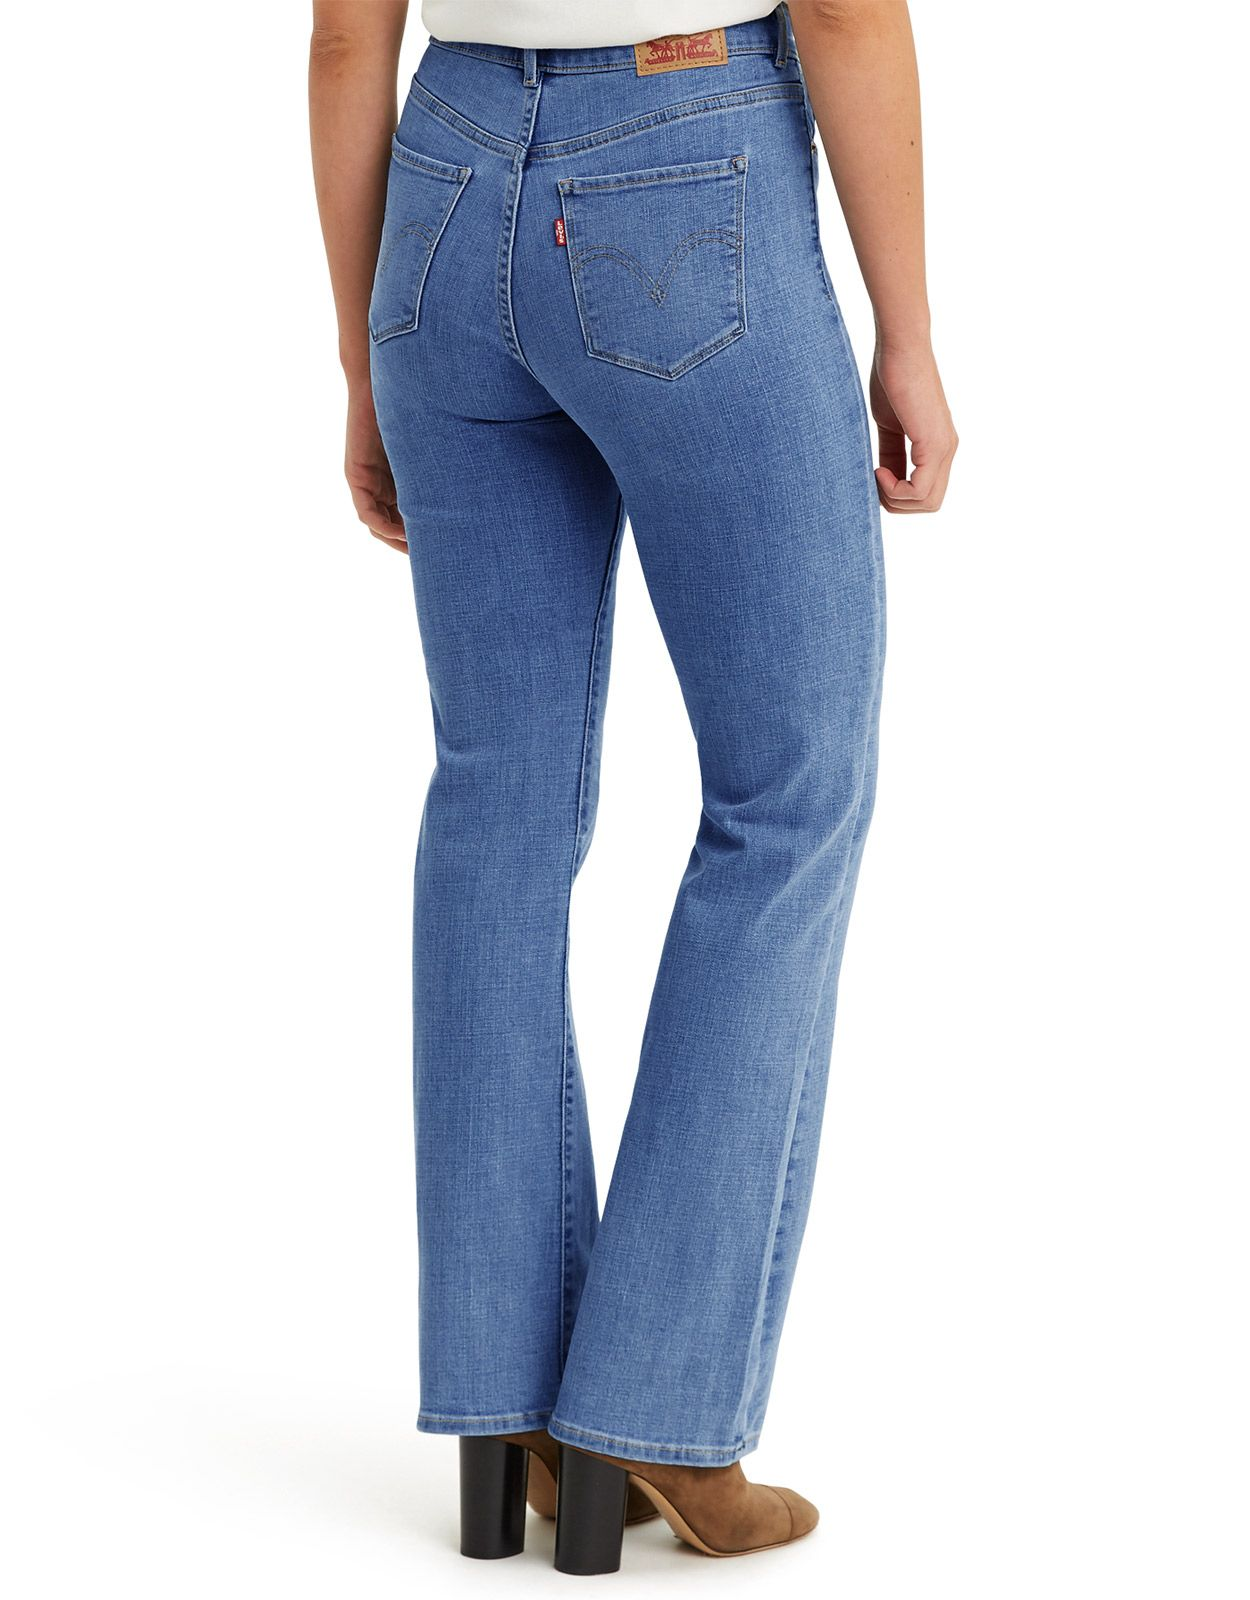 Levi's Women's Classic Bootcut Stretch Mid Rise Easy Fit Boot Cut Jeans - Lapis Sights